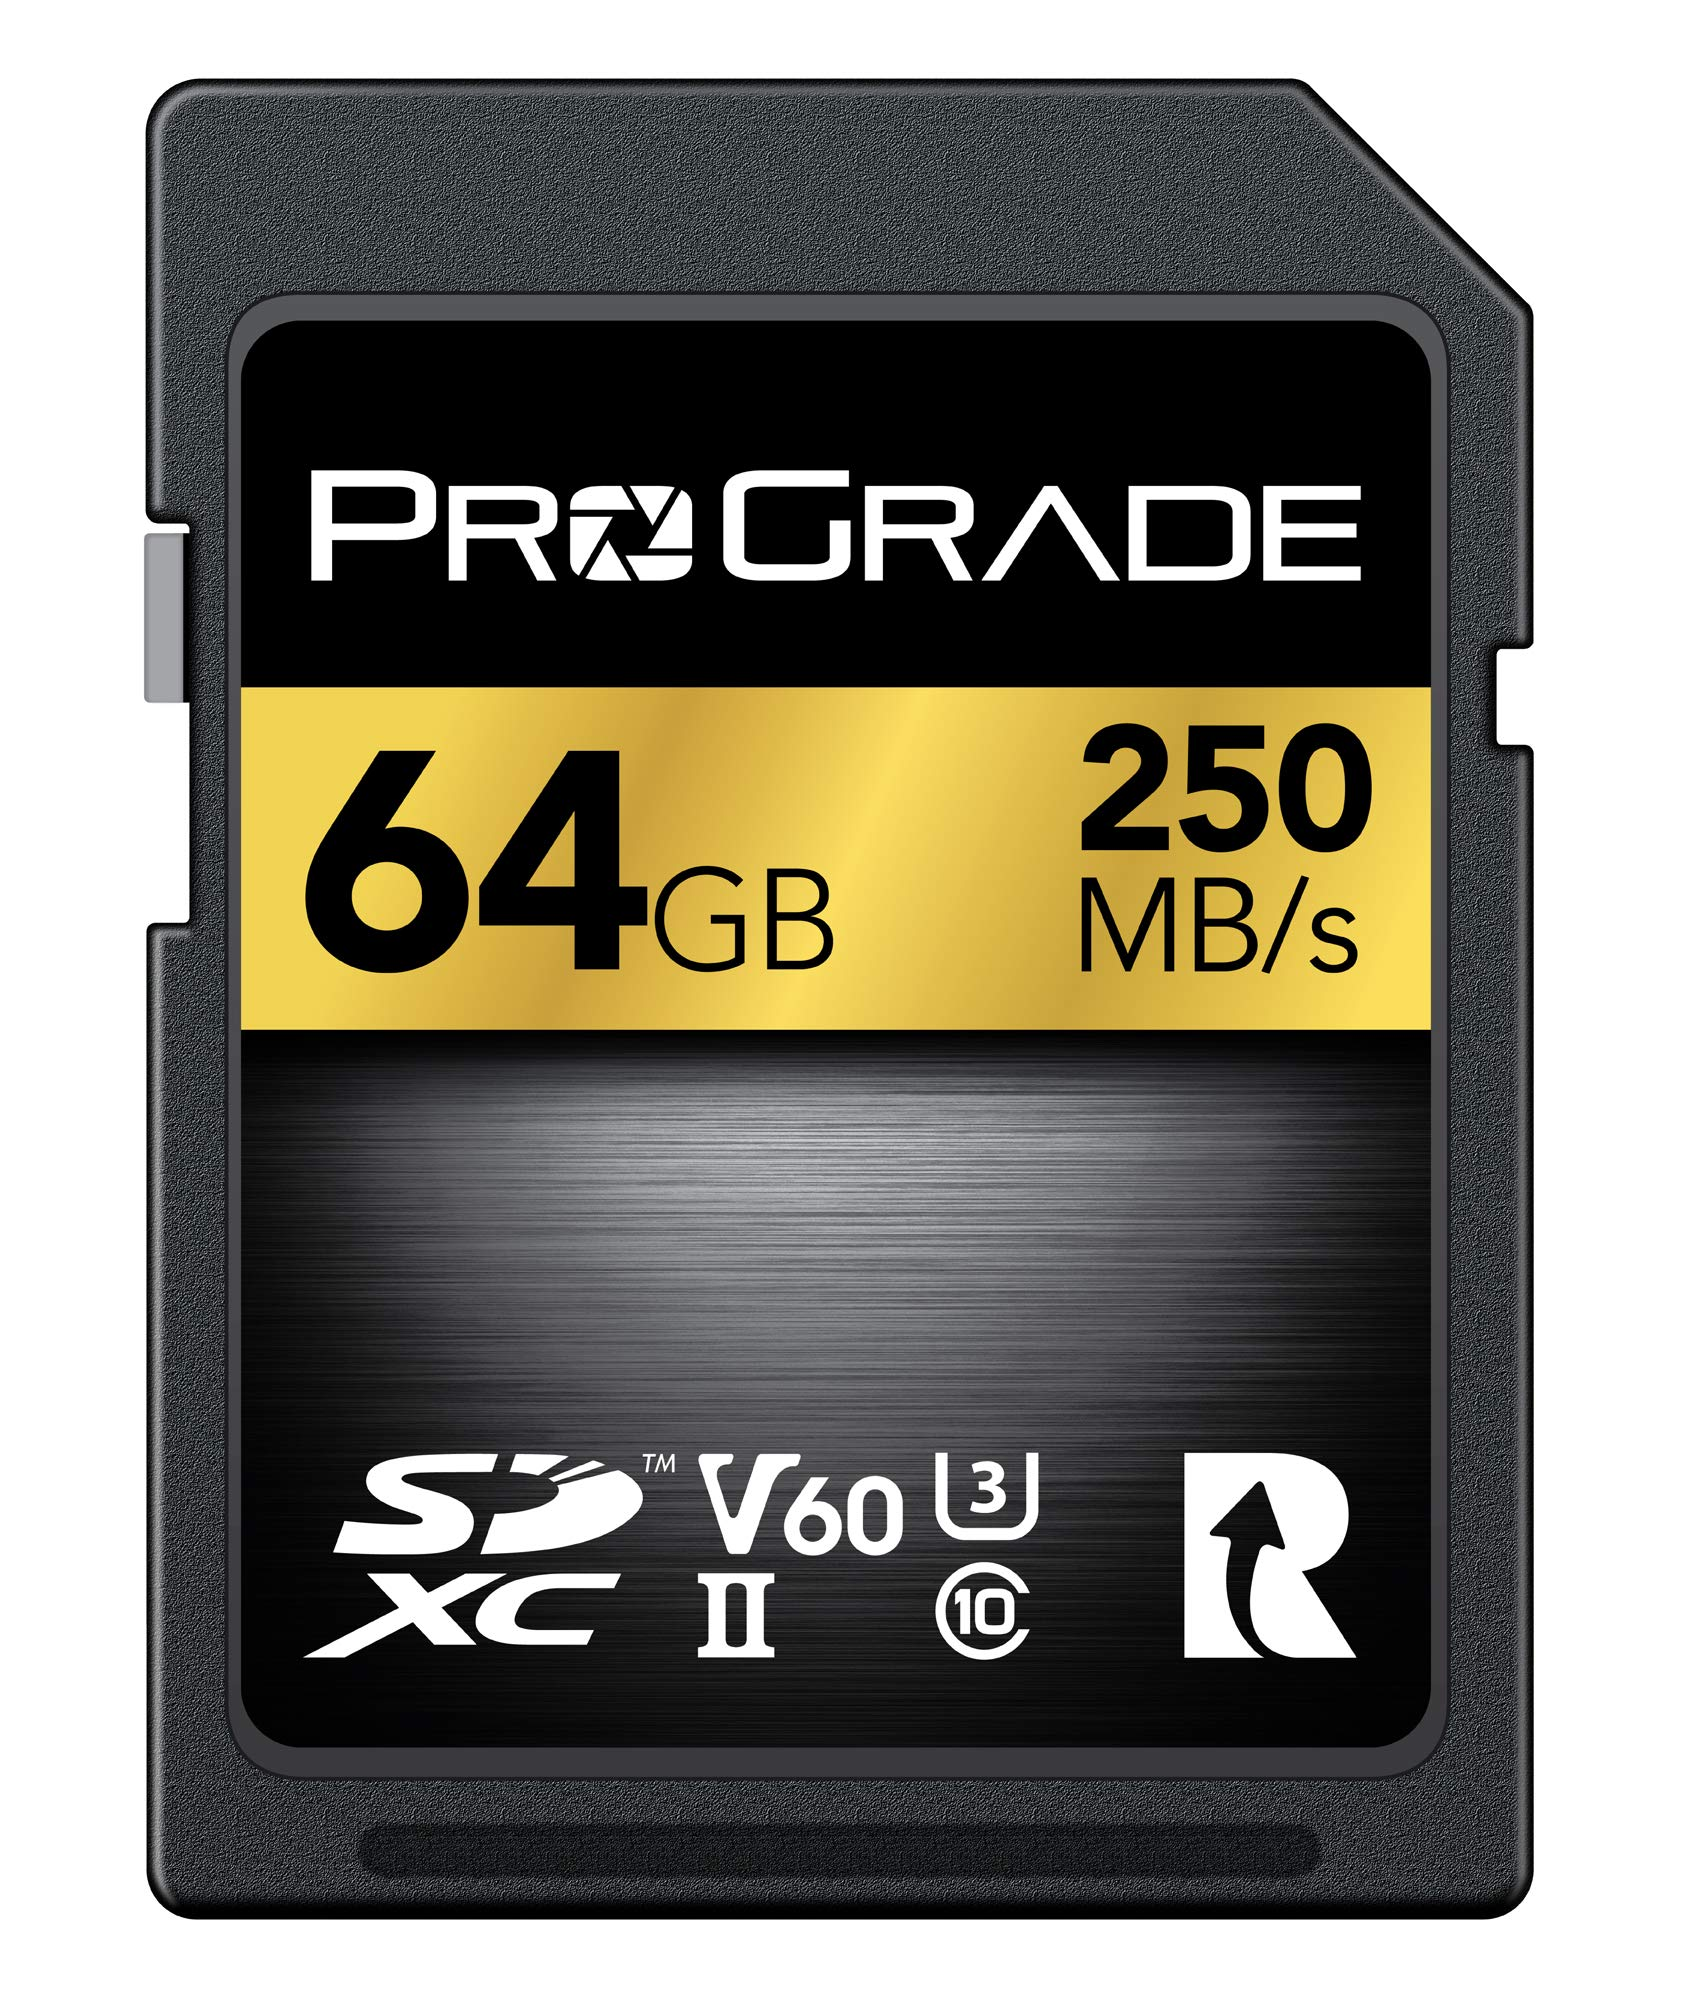 SD Card V60 (64GB) -Up to 130MB/s Write Speed and 250MB/s Read Speed | for Professional Vloggers, Filmmakers, Photographers & Content Curators - Update Firmware Included - by ProGrade Digital by ProGrade Digital